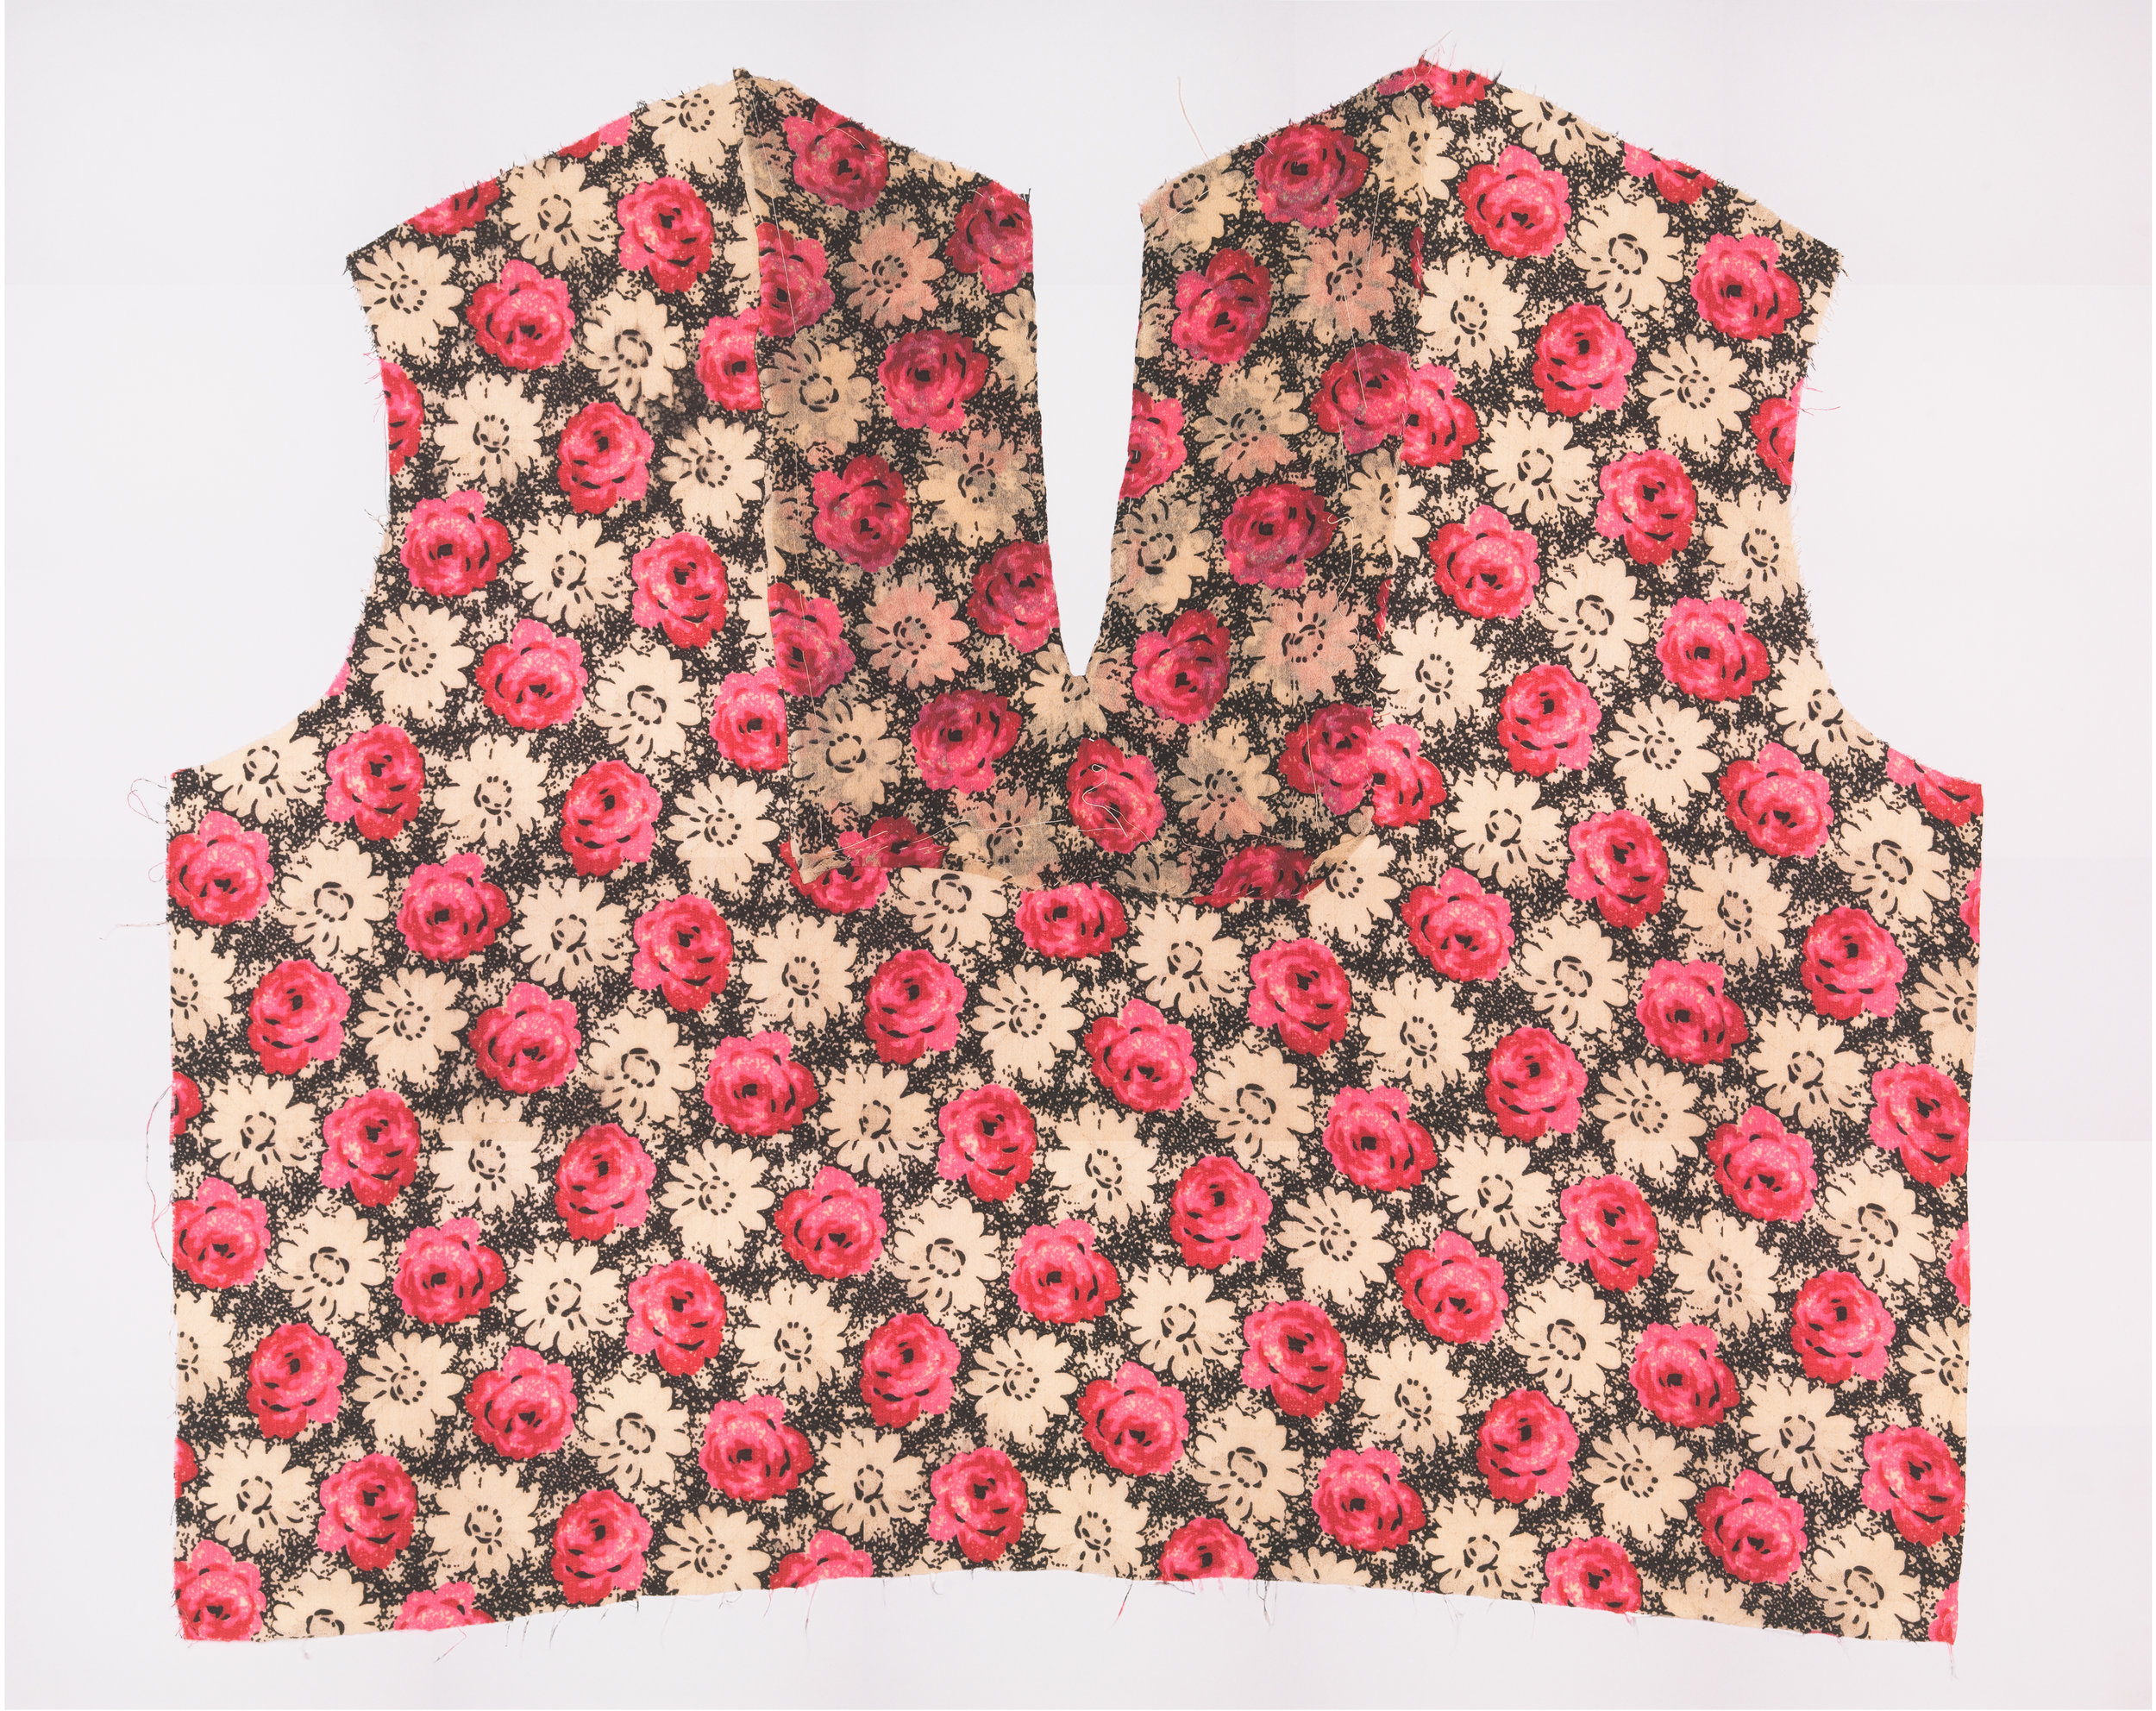 Two Photographs of Both Sides of a Dress Fragment, 2008